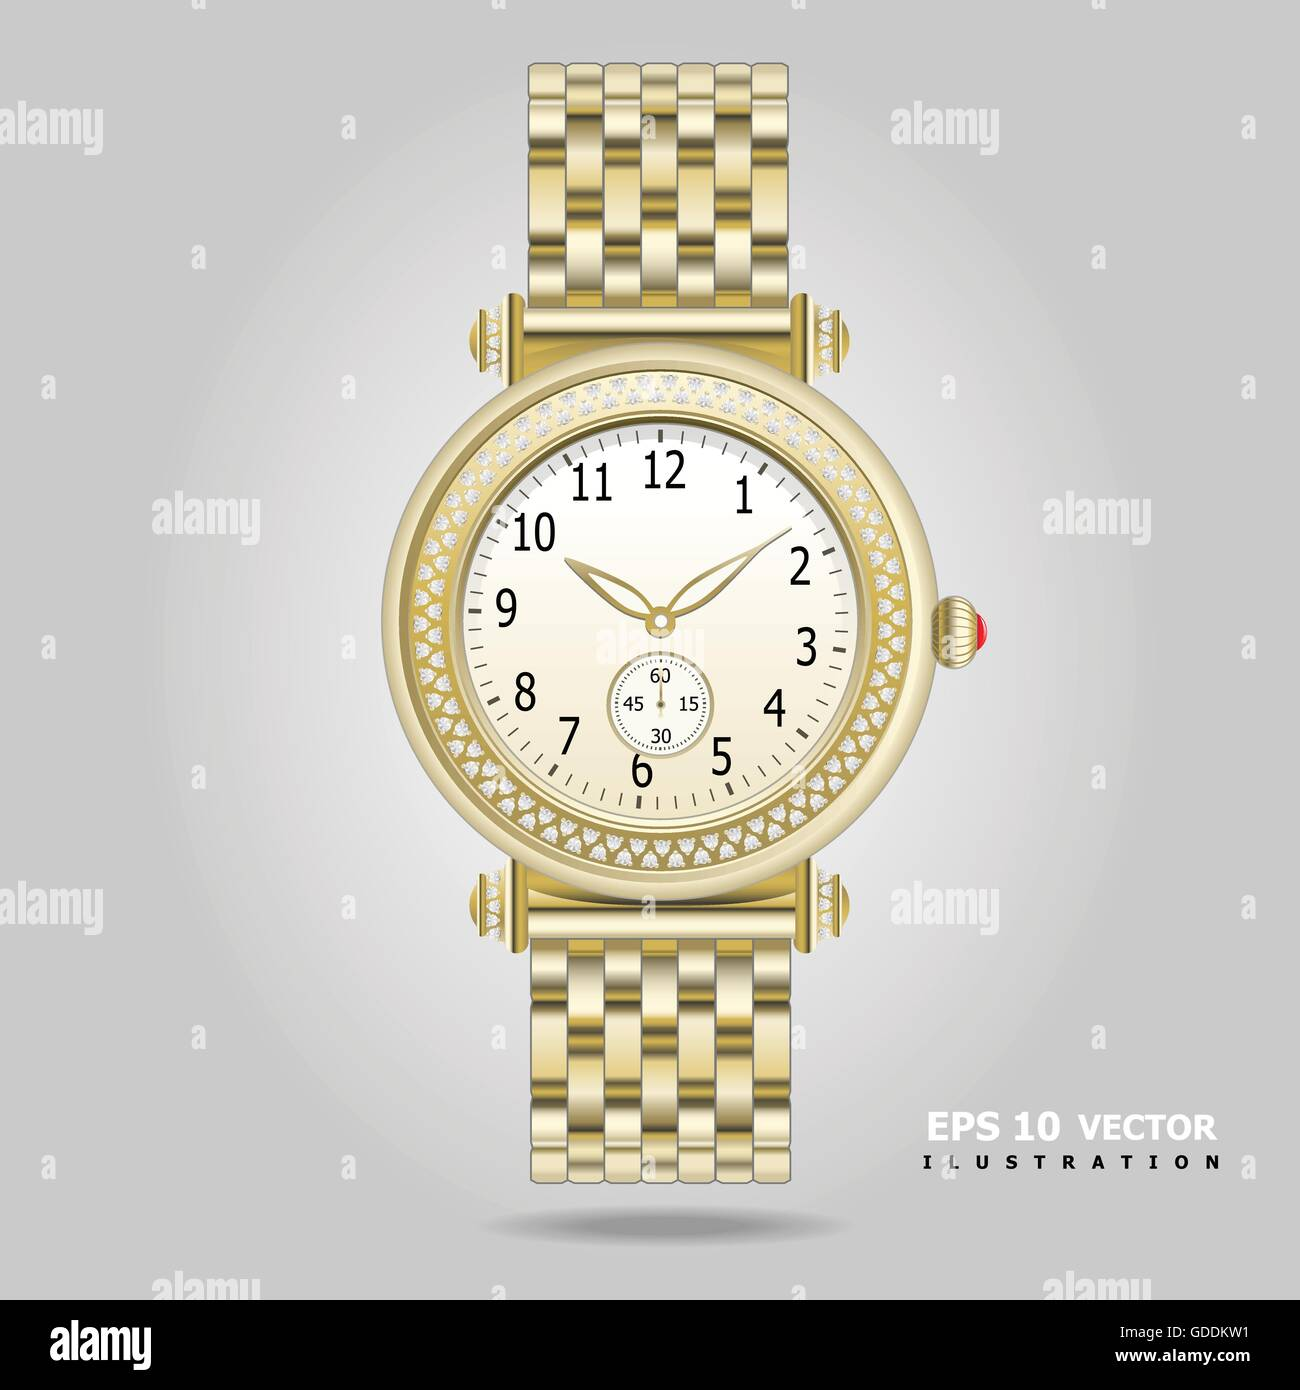 Golden watch with diamonds vector illustration. - Stock Image